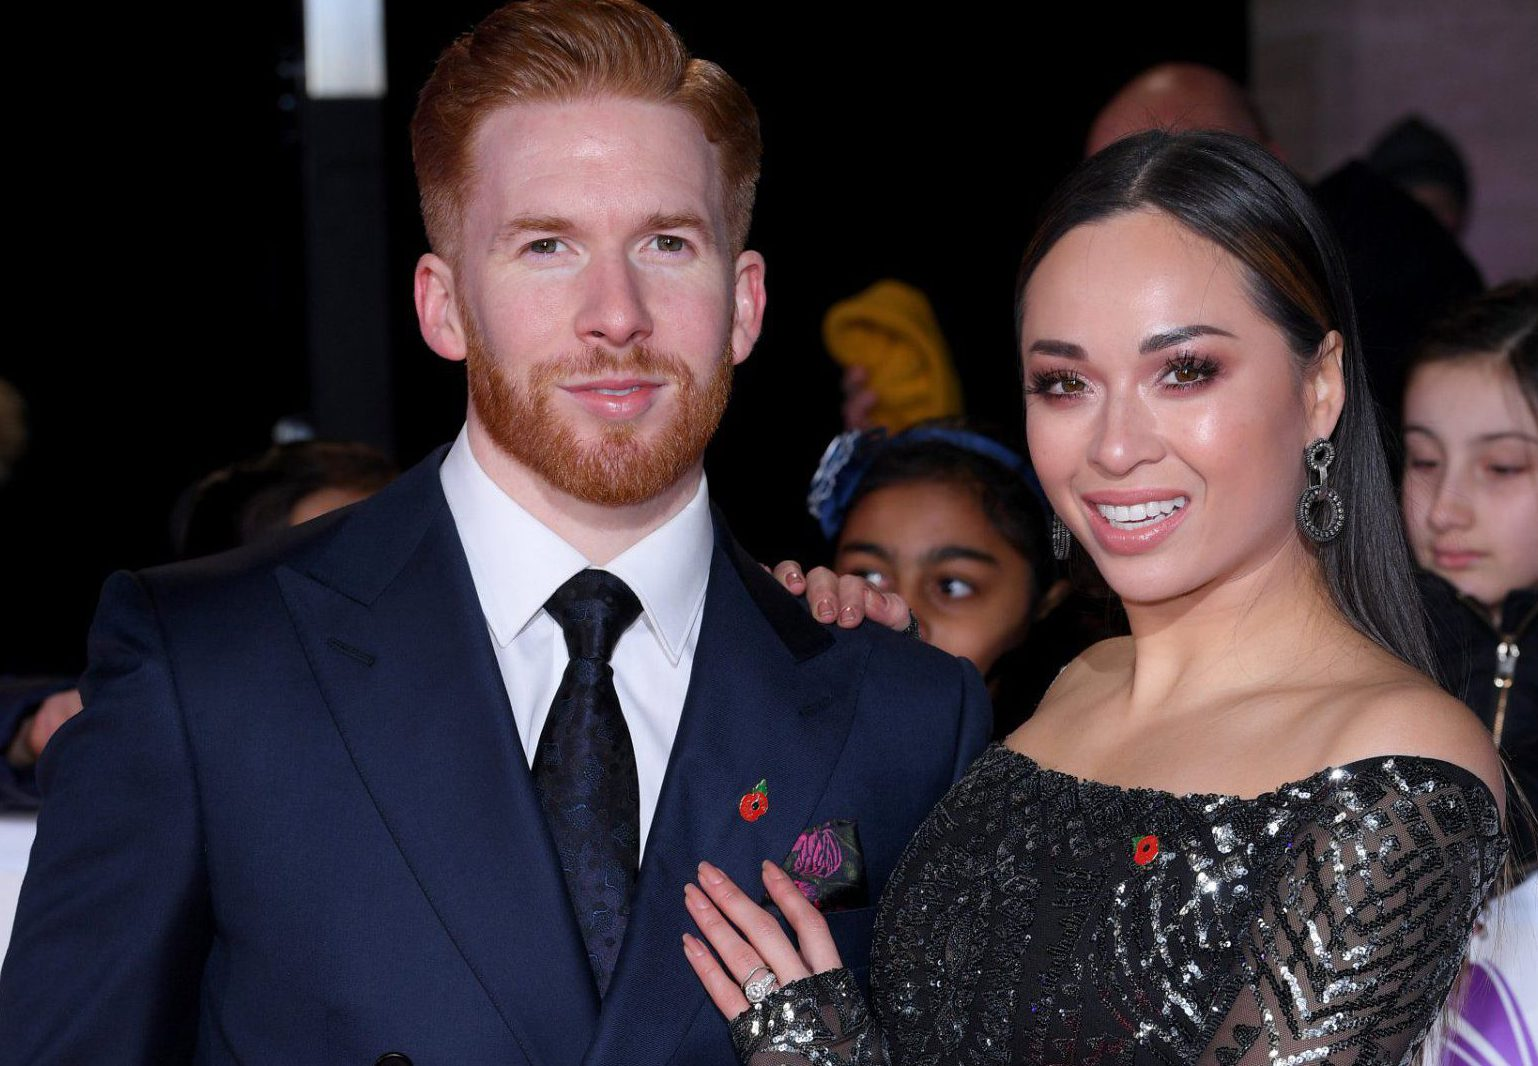 Mandatory Credit: Photo by David Fisher/REX (9947961lr) Katya Jones and husband Neil Jones Pride of Britain Awards, Grosvenor House, London, UK - 29 Oct 2018 The Daily Mirror Pride of Britain Awards, in partnership with TSB, will broadcast on ITV on 6th November at 8pm